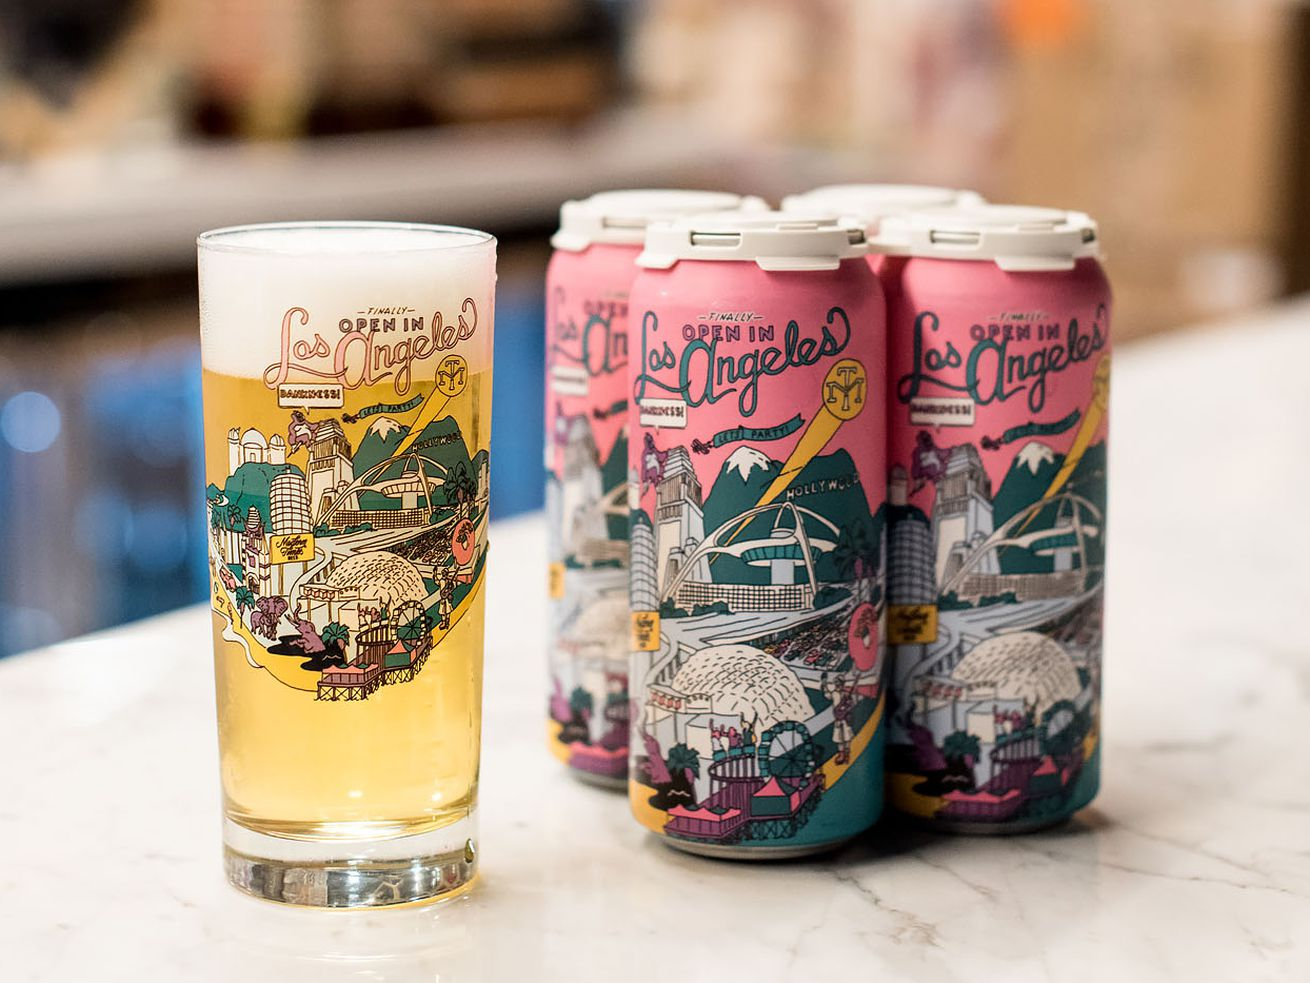 Los Angeles-branded craft beer from Modern Times